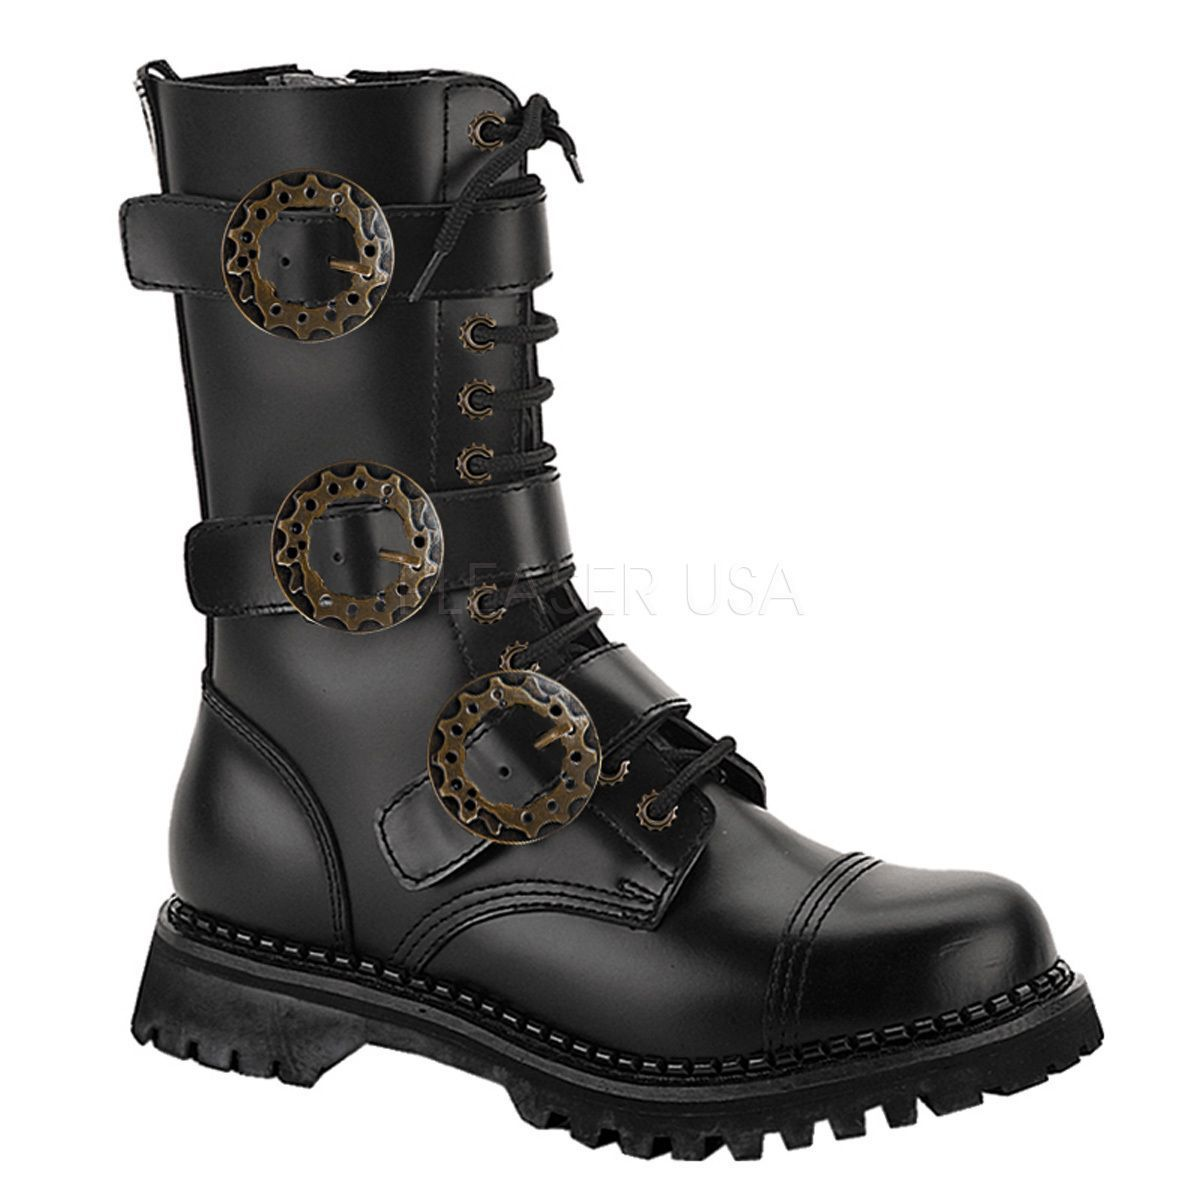 Styled with straps across the entire shaft, these mid-calf bootsinclude steampunk buckles. These leather boots from Demonia hit atthe knee and finish with a lace-up front. Color options: Black, brown #midcalfboots